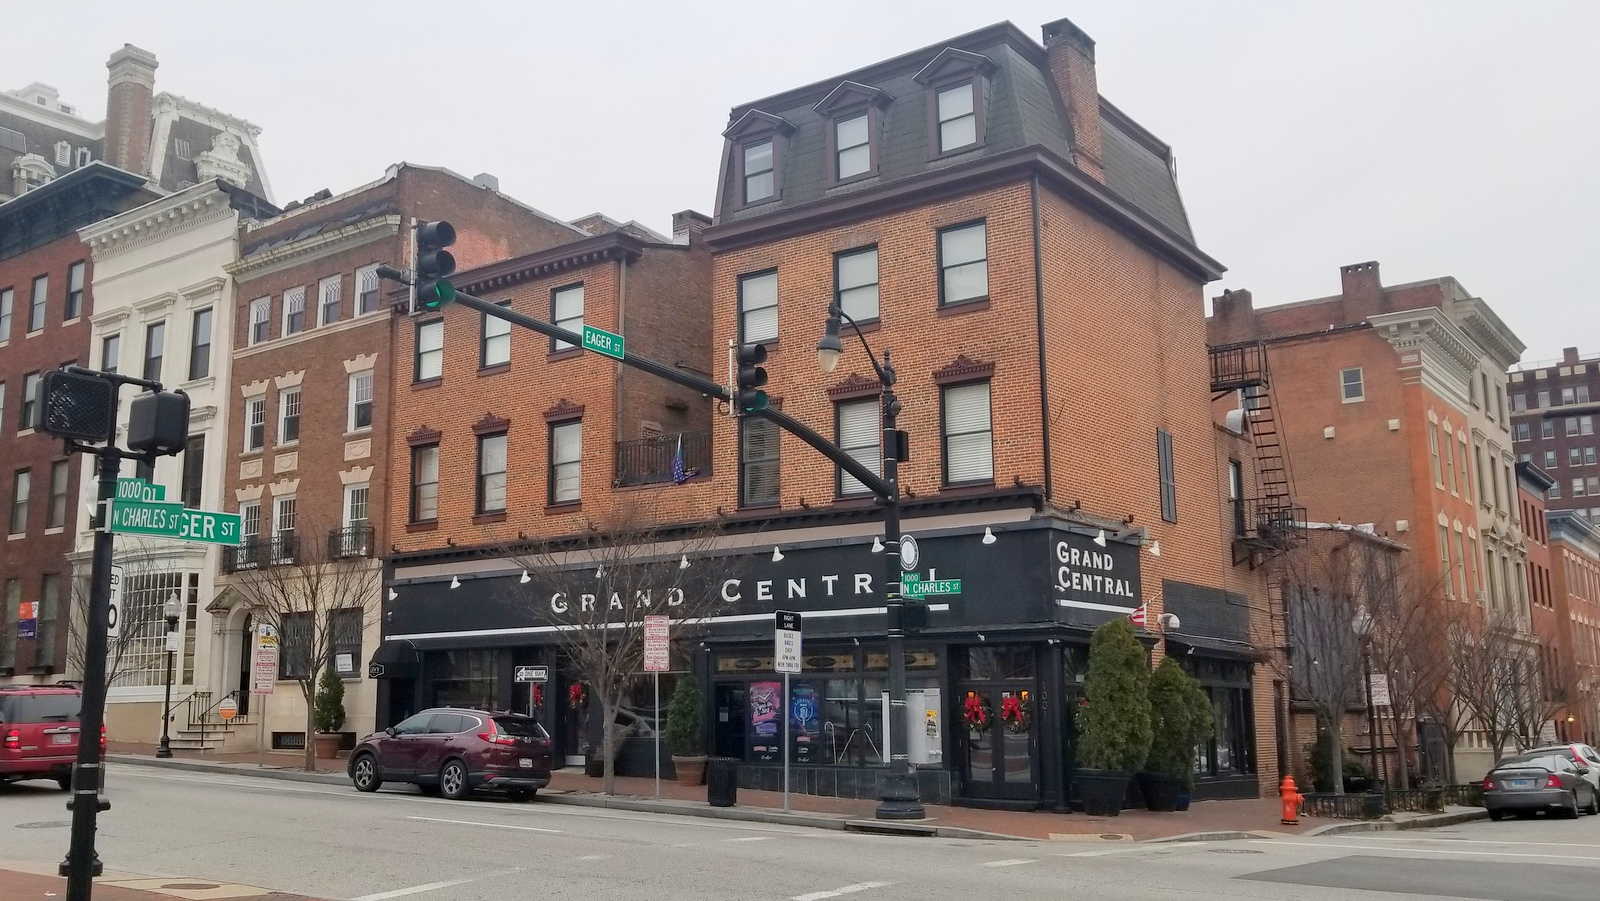 Grand Central, possibly Baltimore's largest gay nightclub, sold earlier this year to a developer. (Ed Gunts)